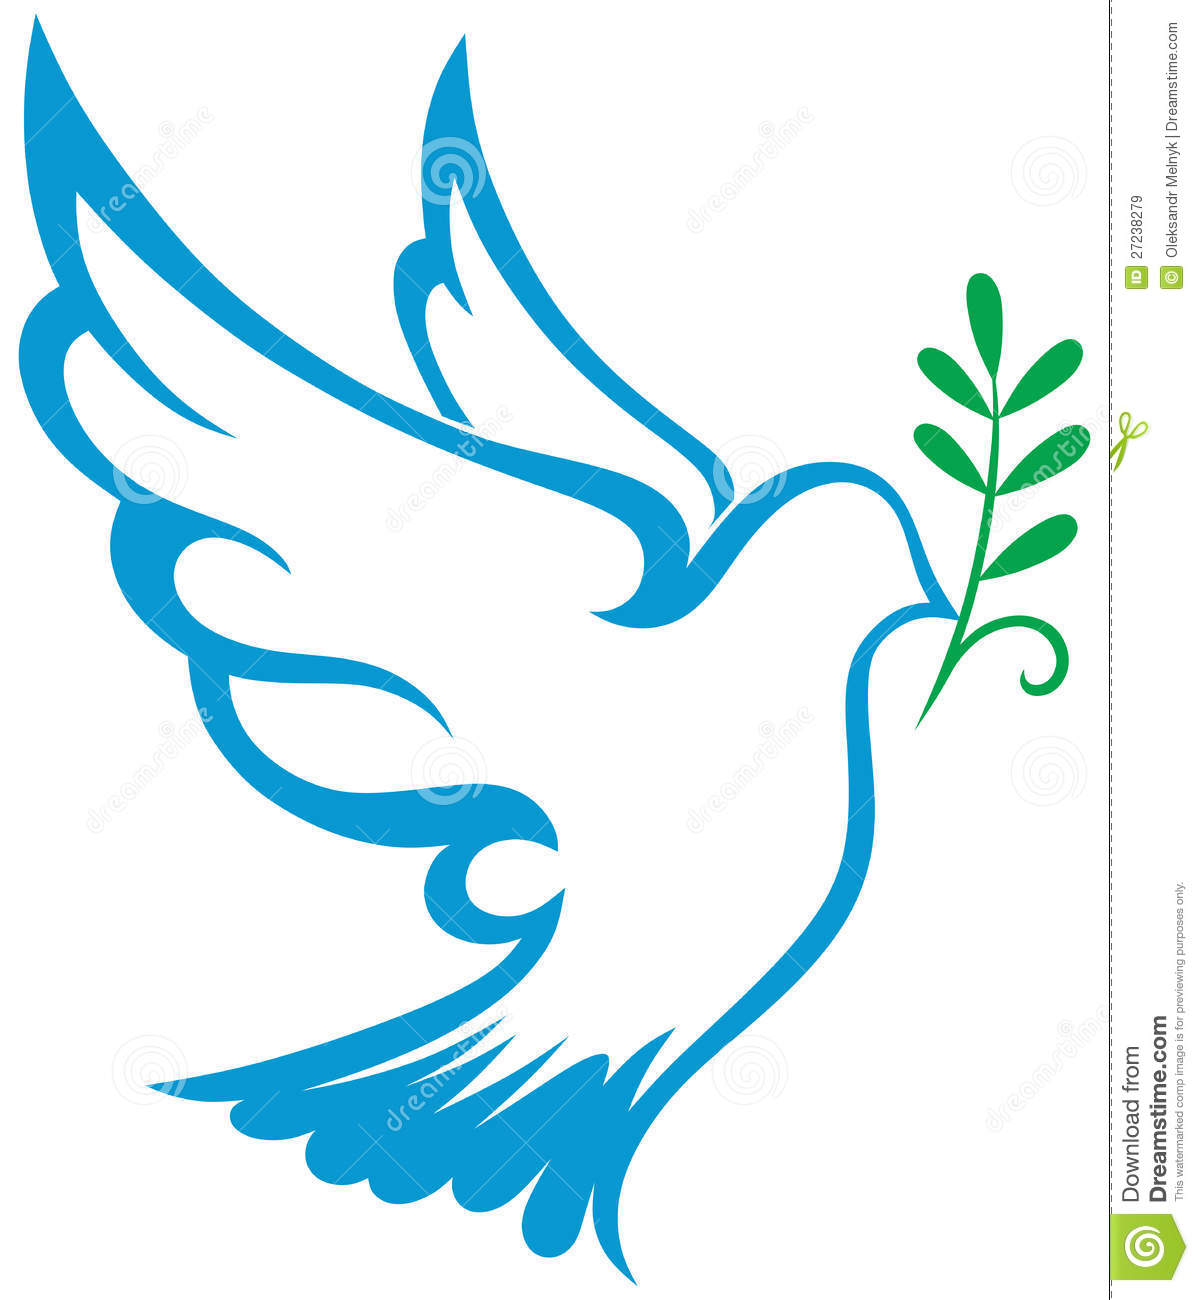 Vector Dove Symbol Royalty Free Stock Images - Image: 27238279